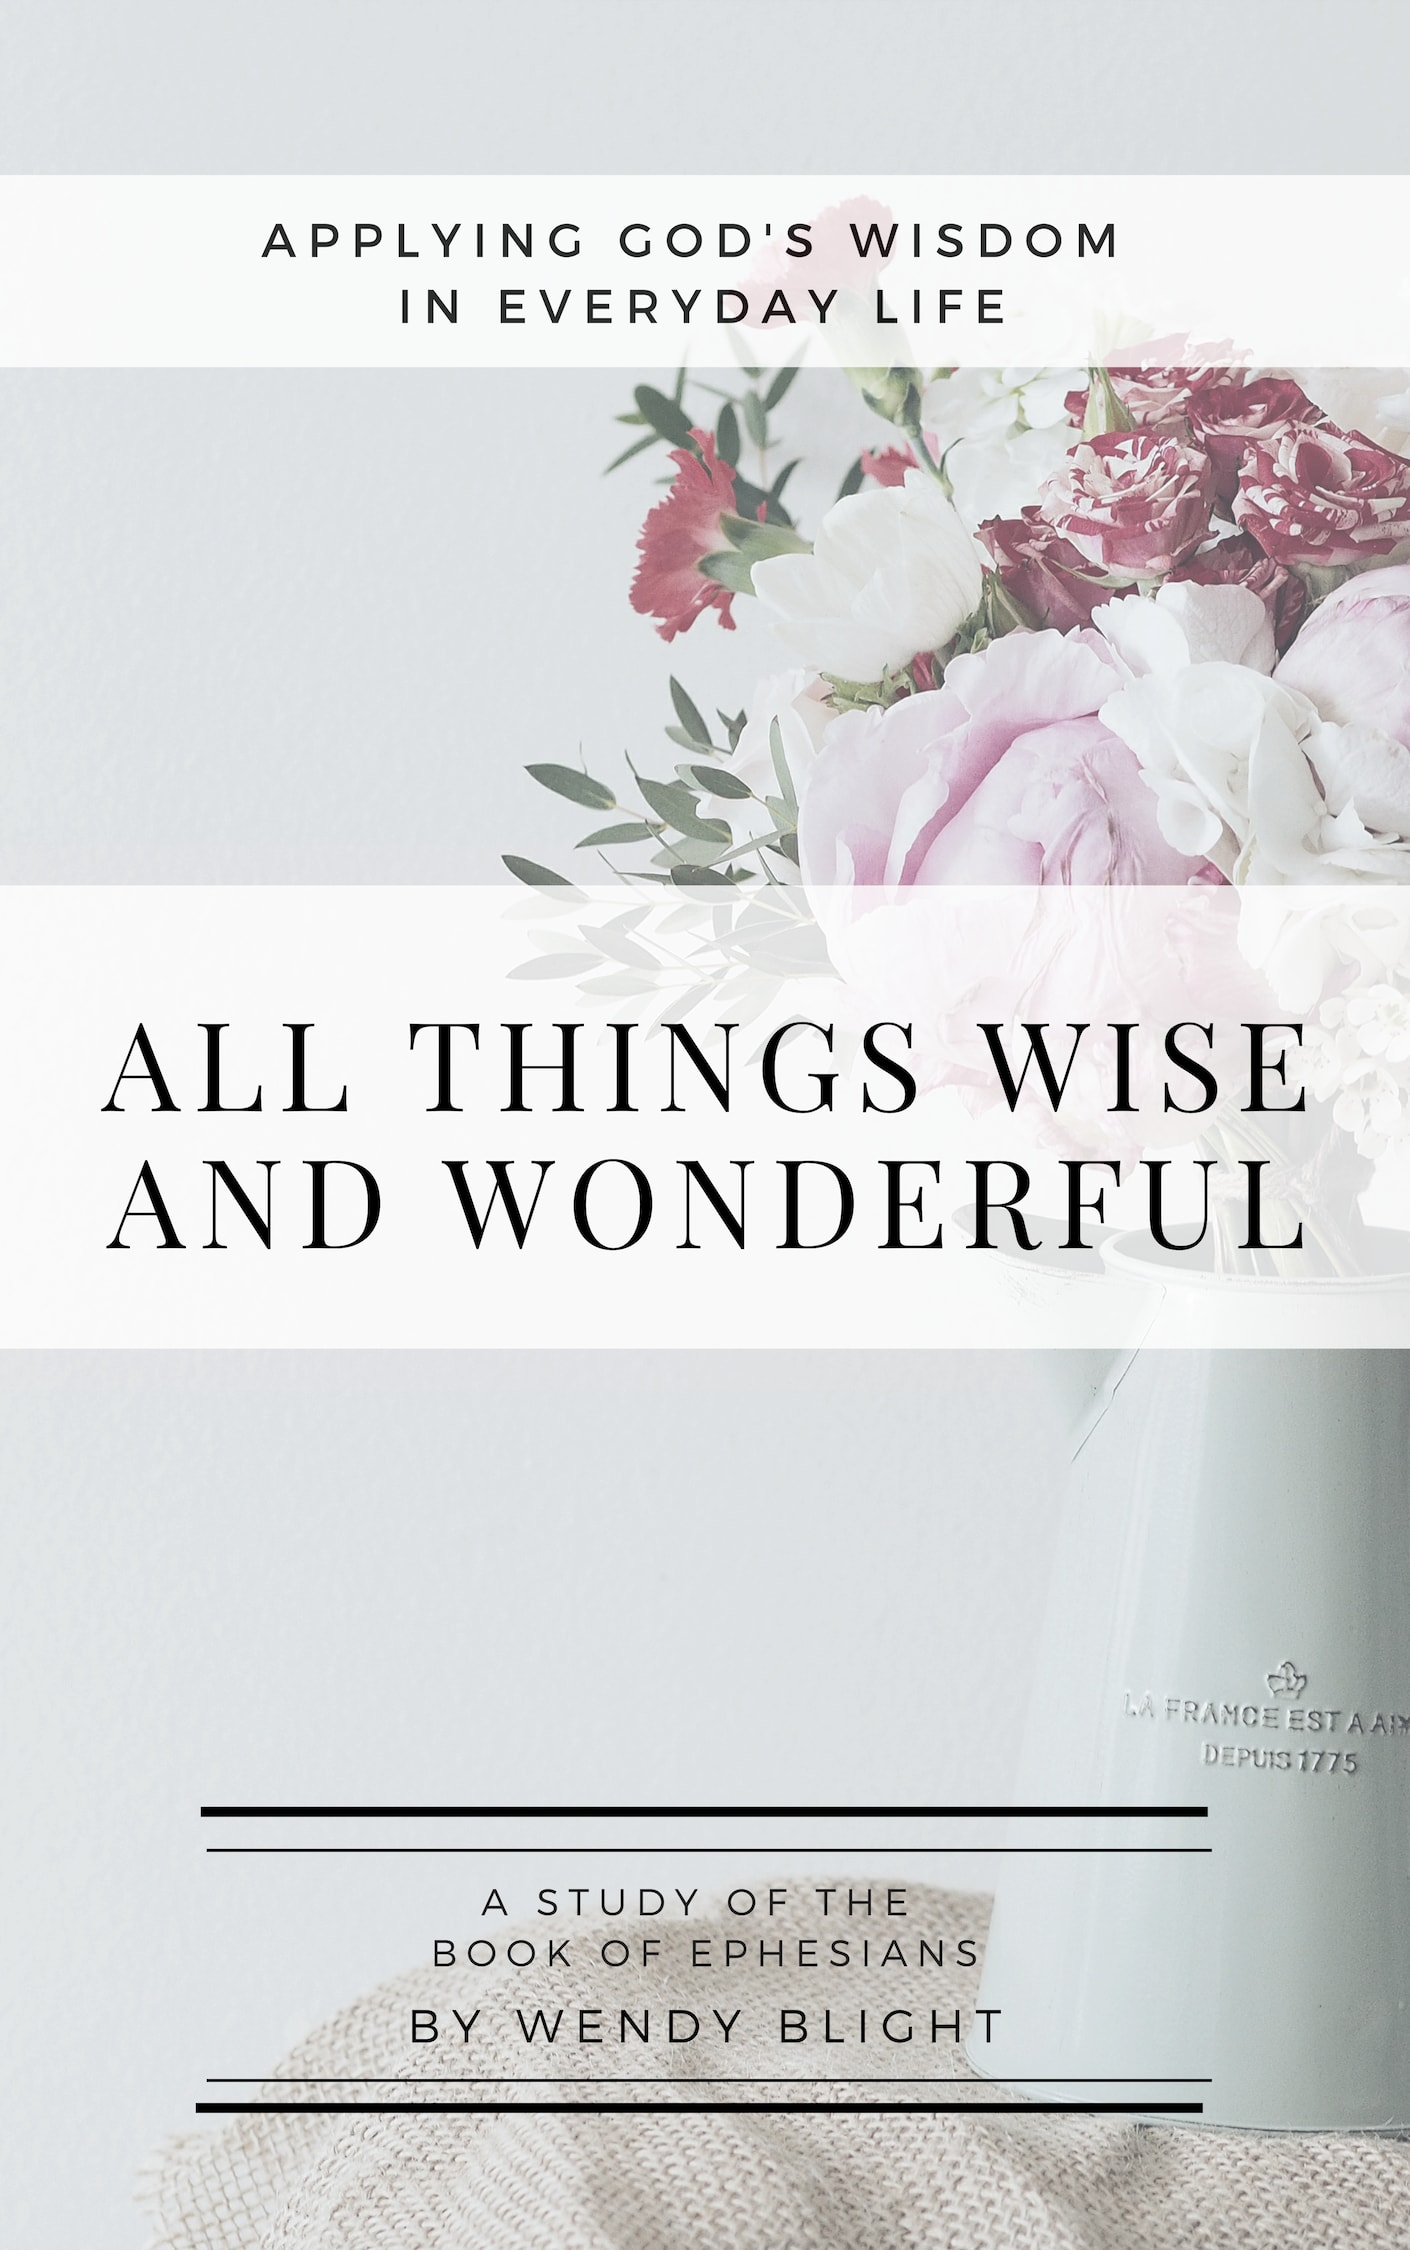 All Things Wise and Wonderful: Applying God's Wisdom in Every Day